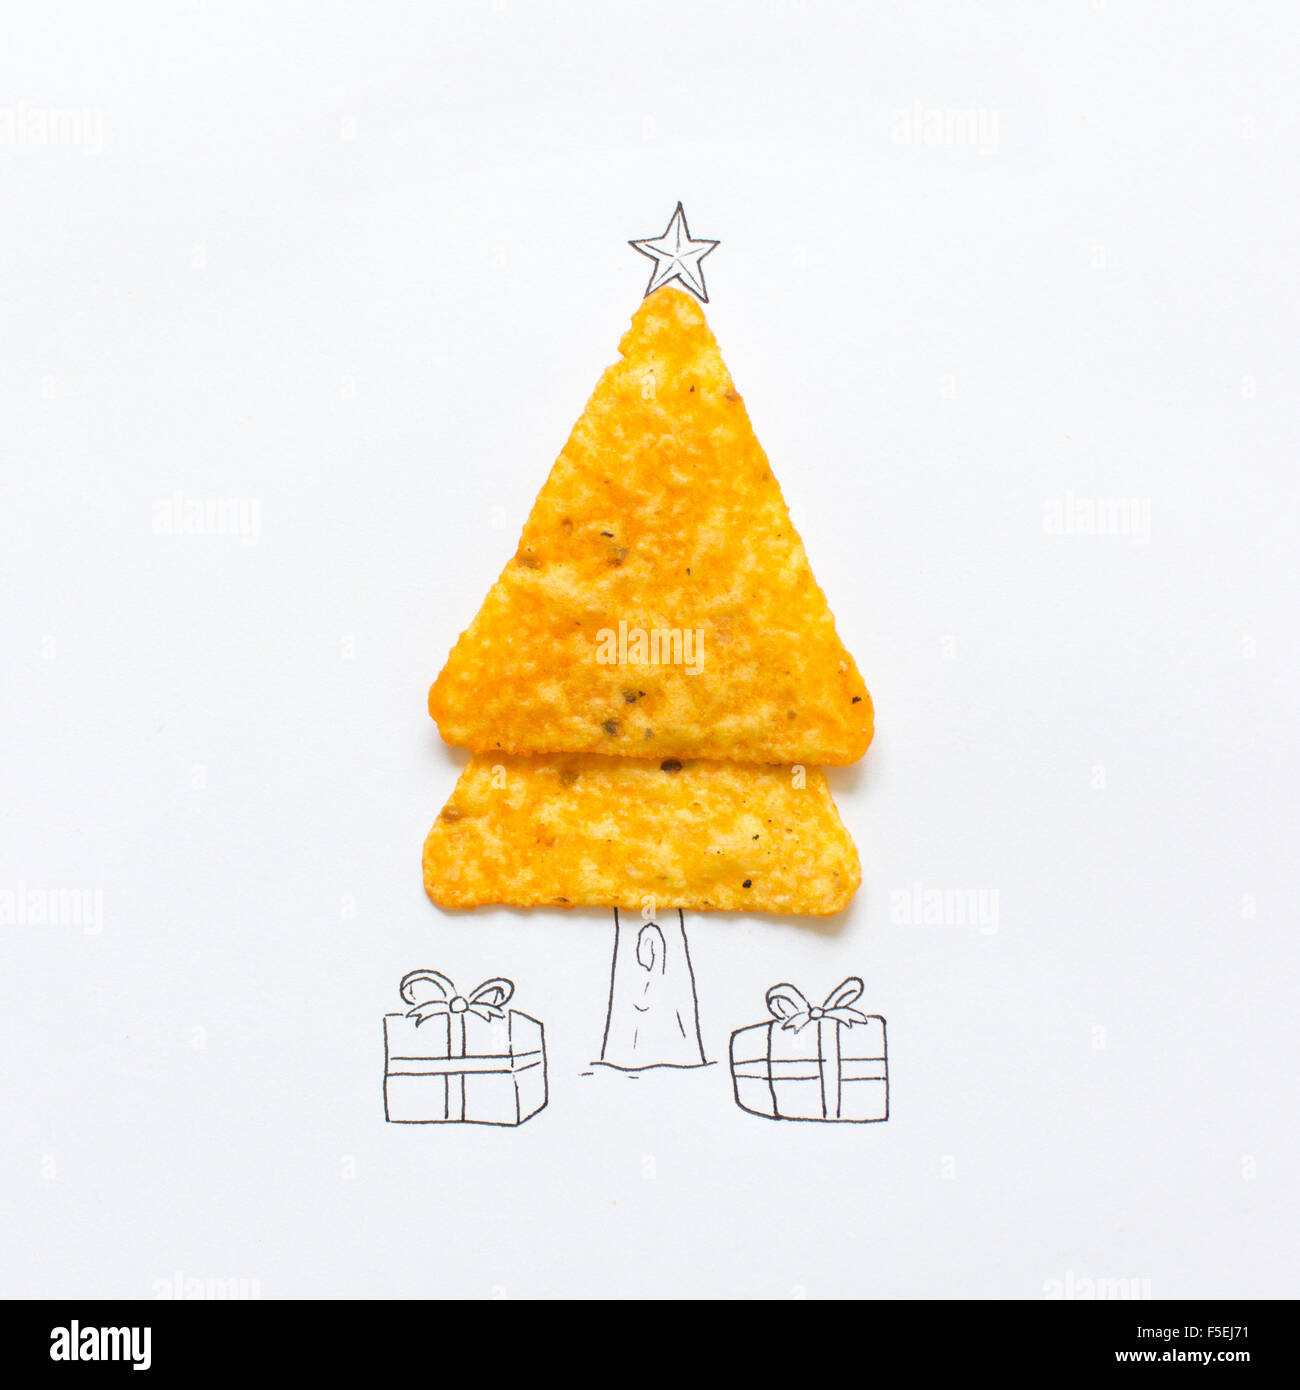 Conceptual drawing of a Christmas tree - Stock Image